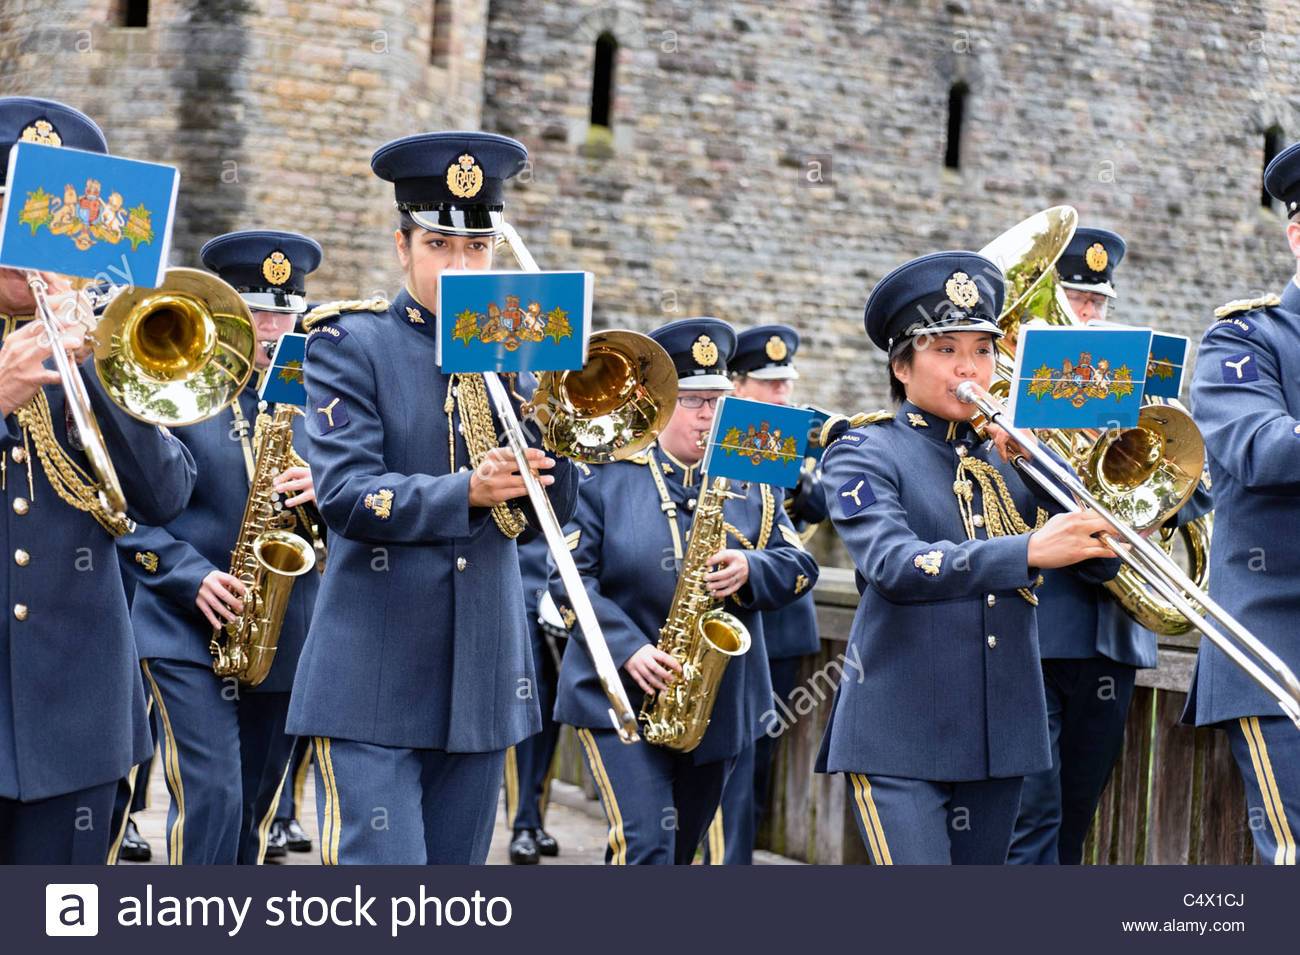 RAF band, Armed Forces Day, Bute Park, Cardiff, Wales, UK. - Stock Image